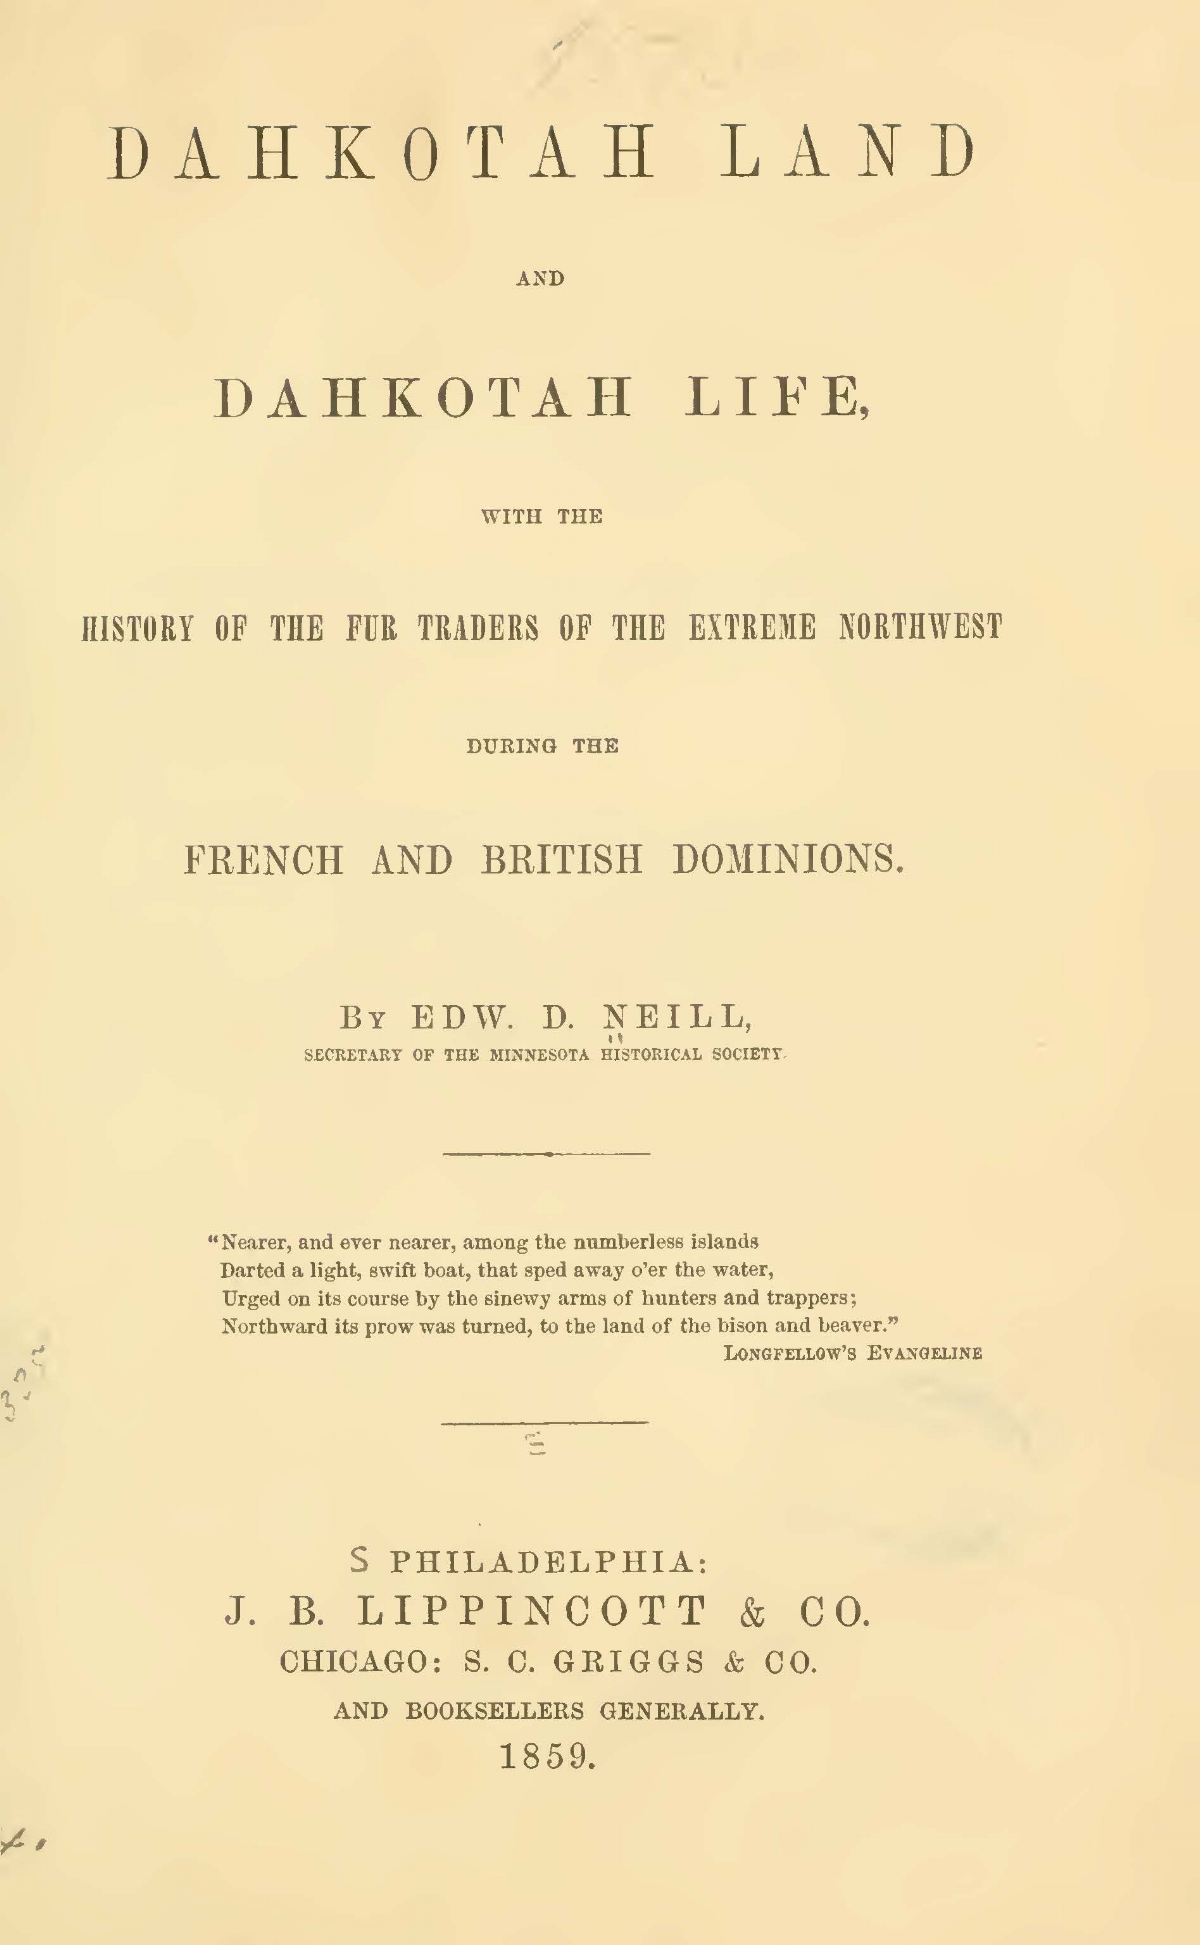 Neill, Edward Duffield, Dahkotah Land and Dahkota Life Title Page.jpg